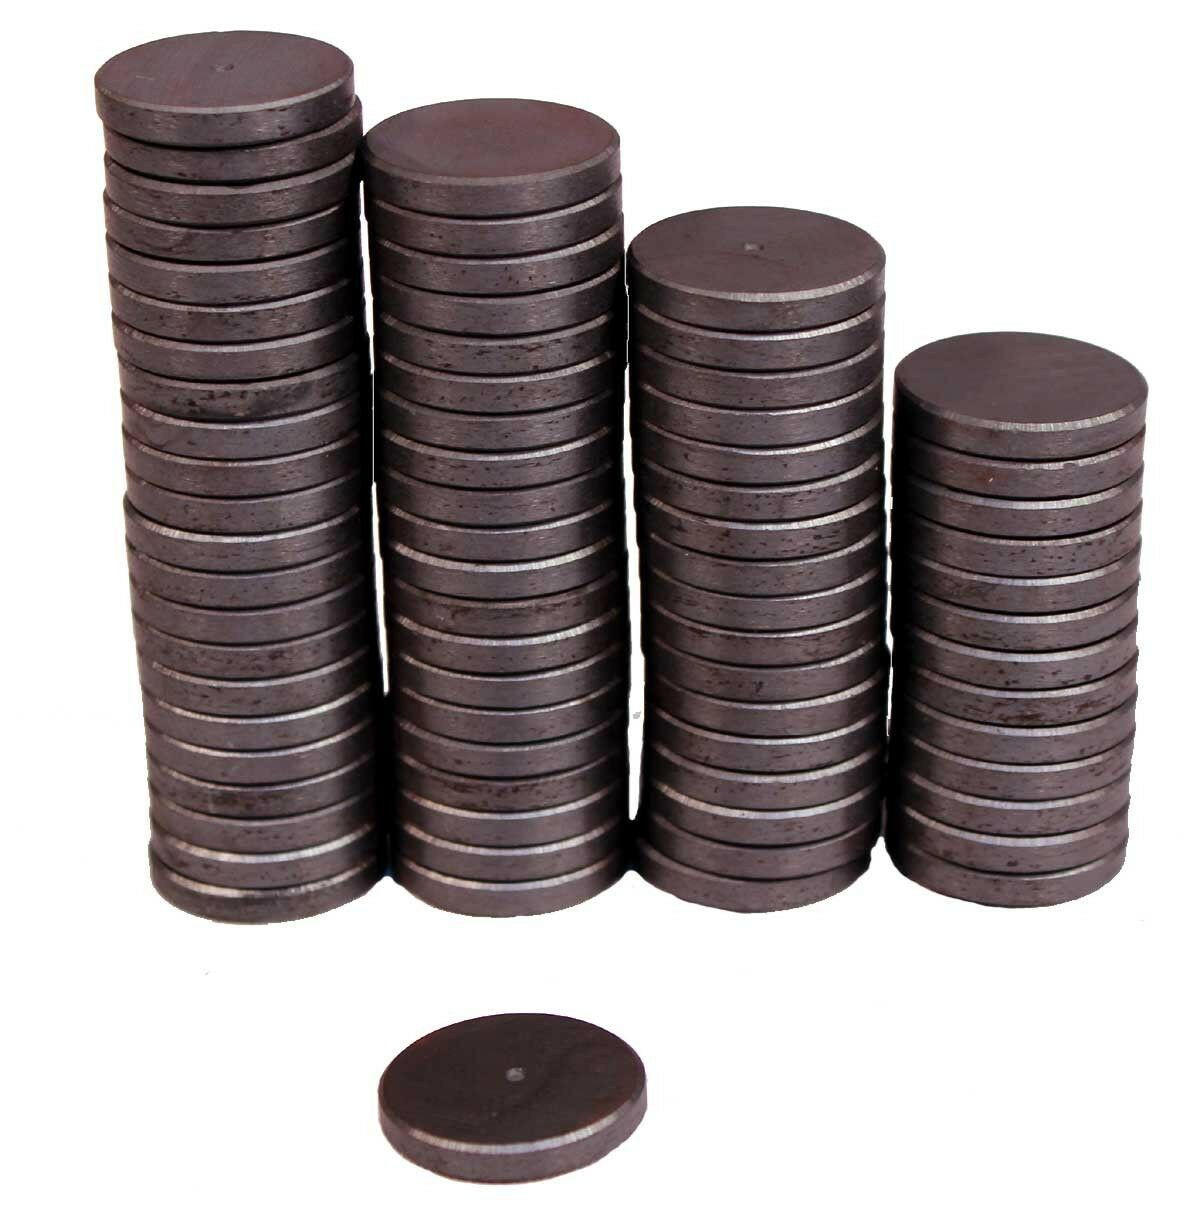 Strong 1″ Round Flat Ceramic Disc Magnets For DIY Crafts ~Bulk Lot of 250 Pcs All-Purpose Craft Supplies